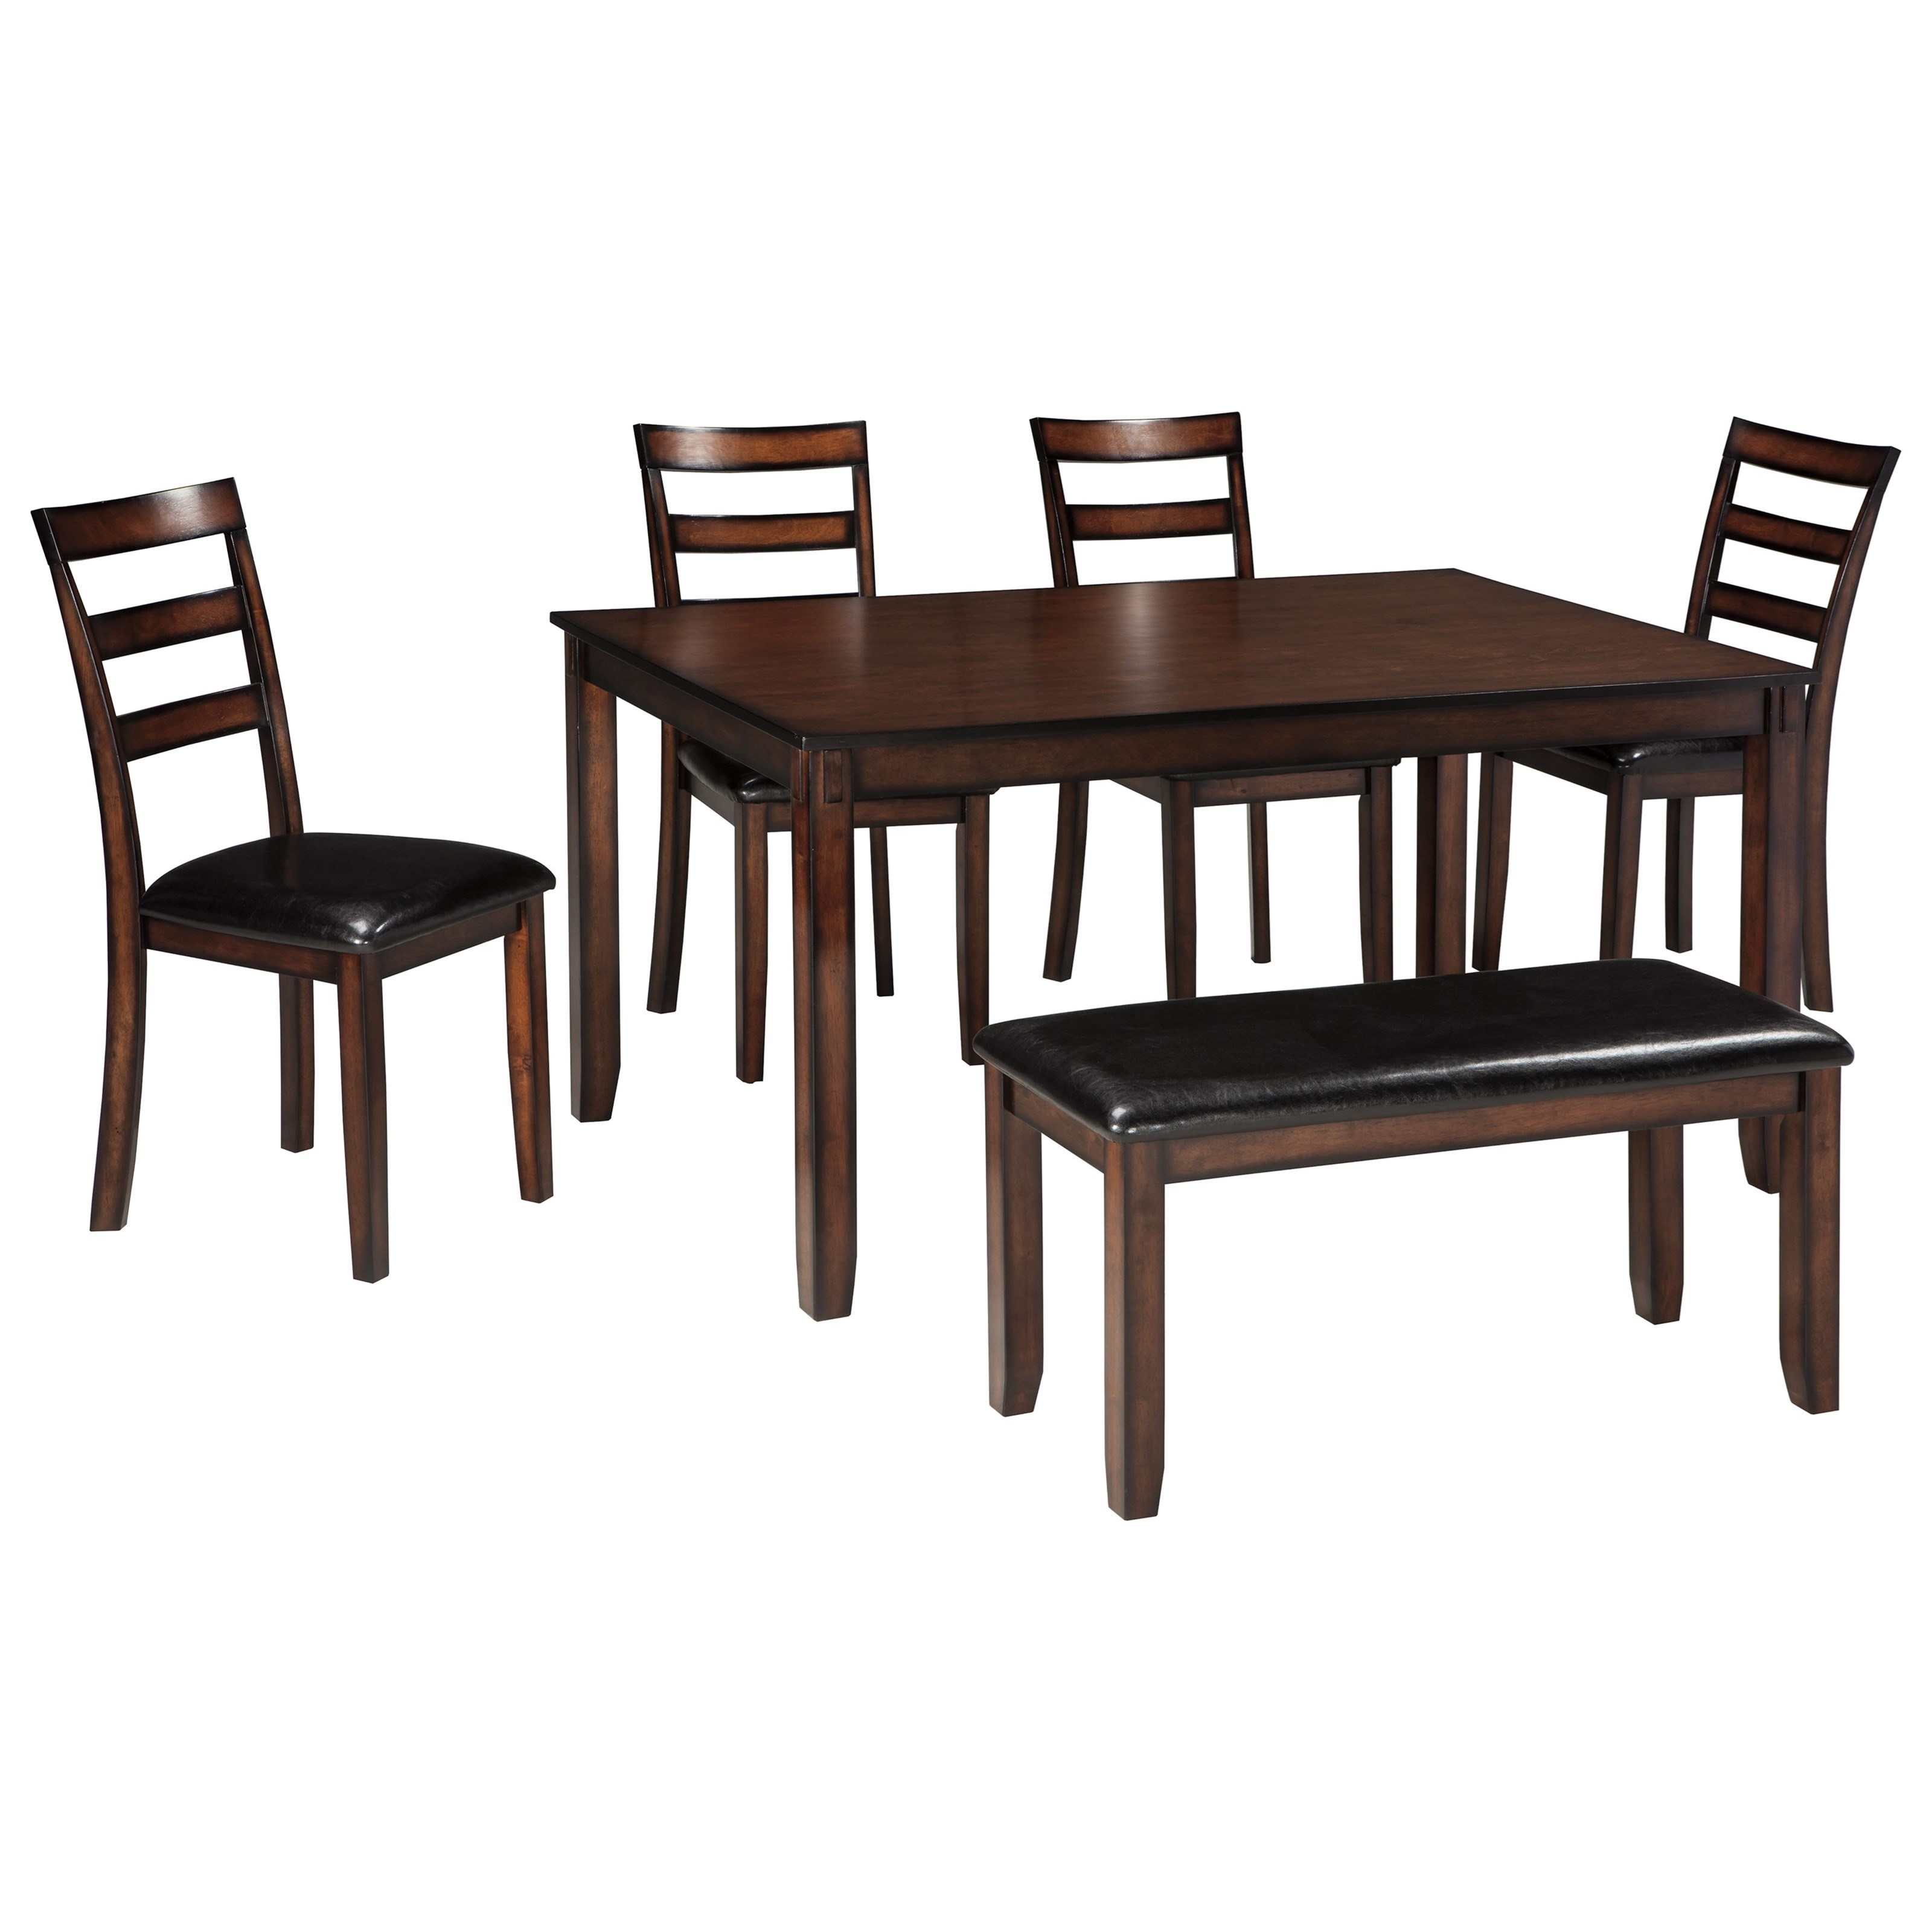 signature design by ashley coviar d385 325 burnished brown 6 piece dining table set with bench. Black Bedroom Furniture Sets. Home Design Ideas